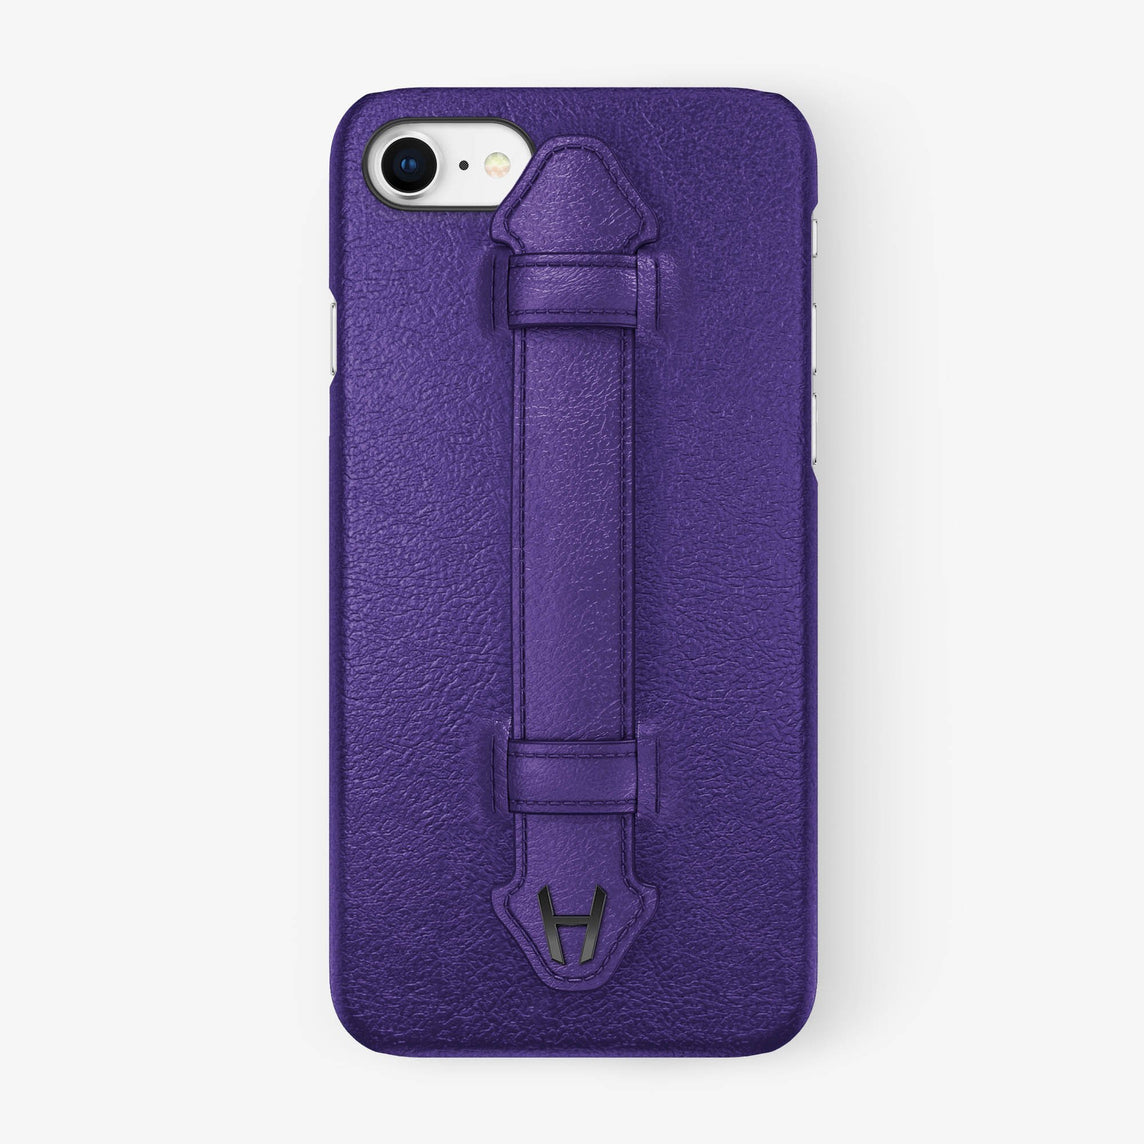 Purple Calfskin iPhone Finger Case for iPhone 7/8 finishing black - Hadoro Luxury Cases